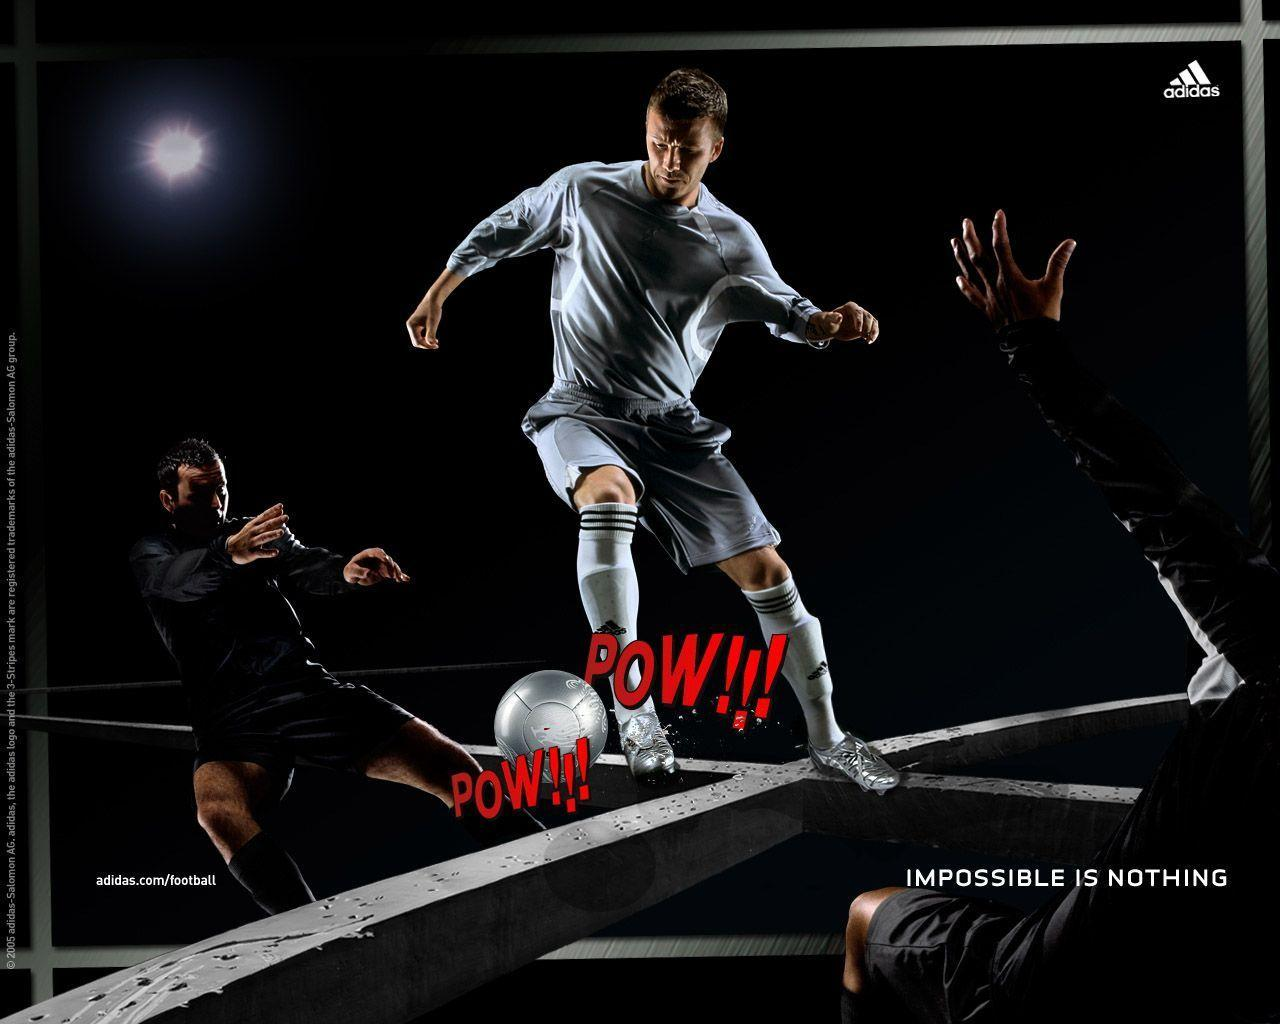 adidas soccer wallpapers wallpaper cave